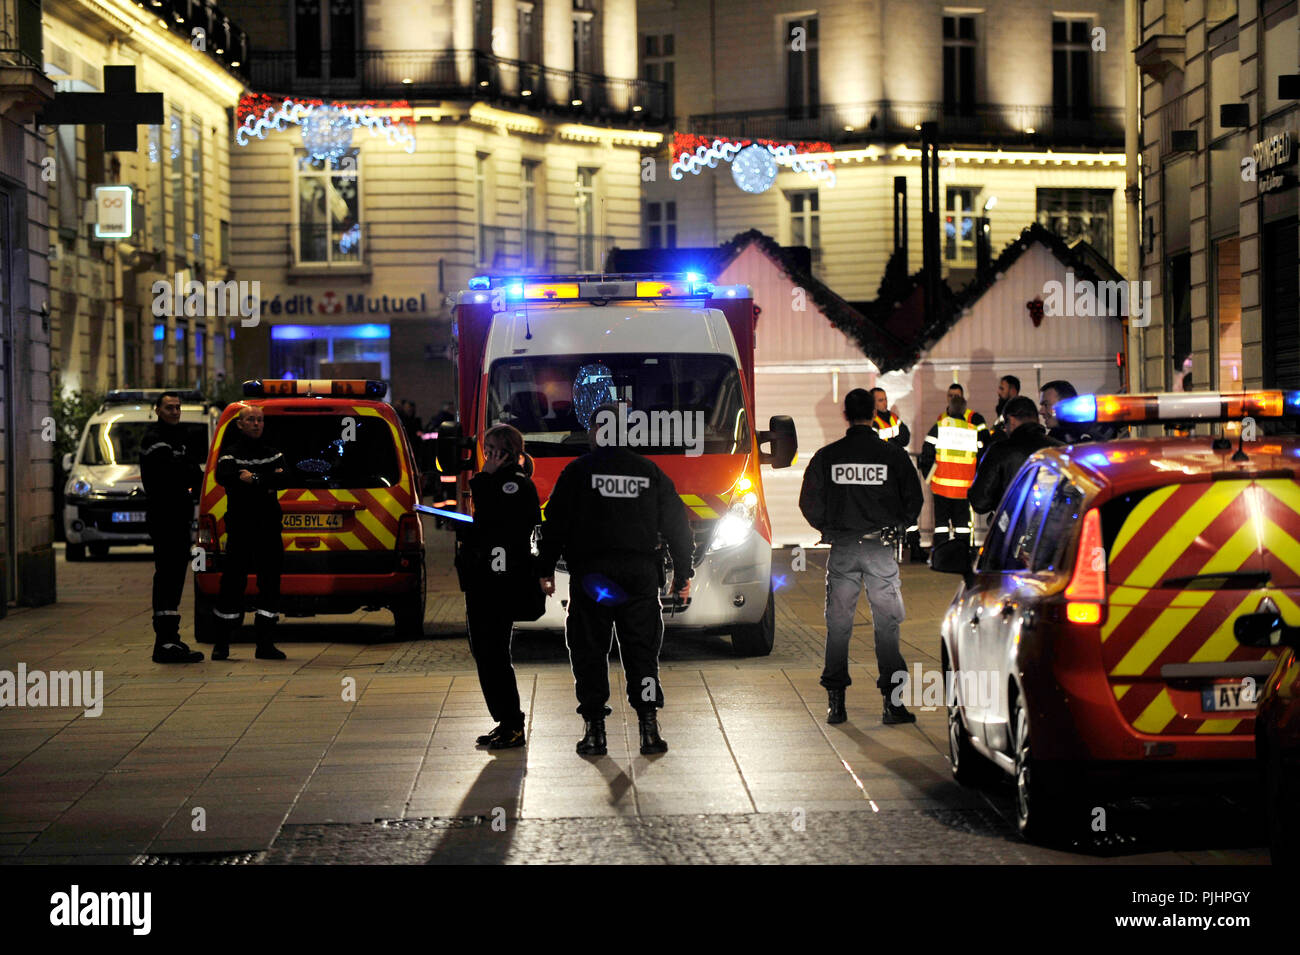 police car in france stock photos police car in france stock images alamy. Black Bedroom Furniture Sets. Home Design Ideas